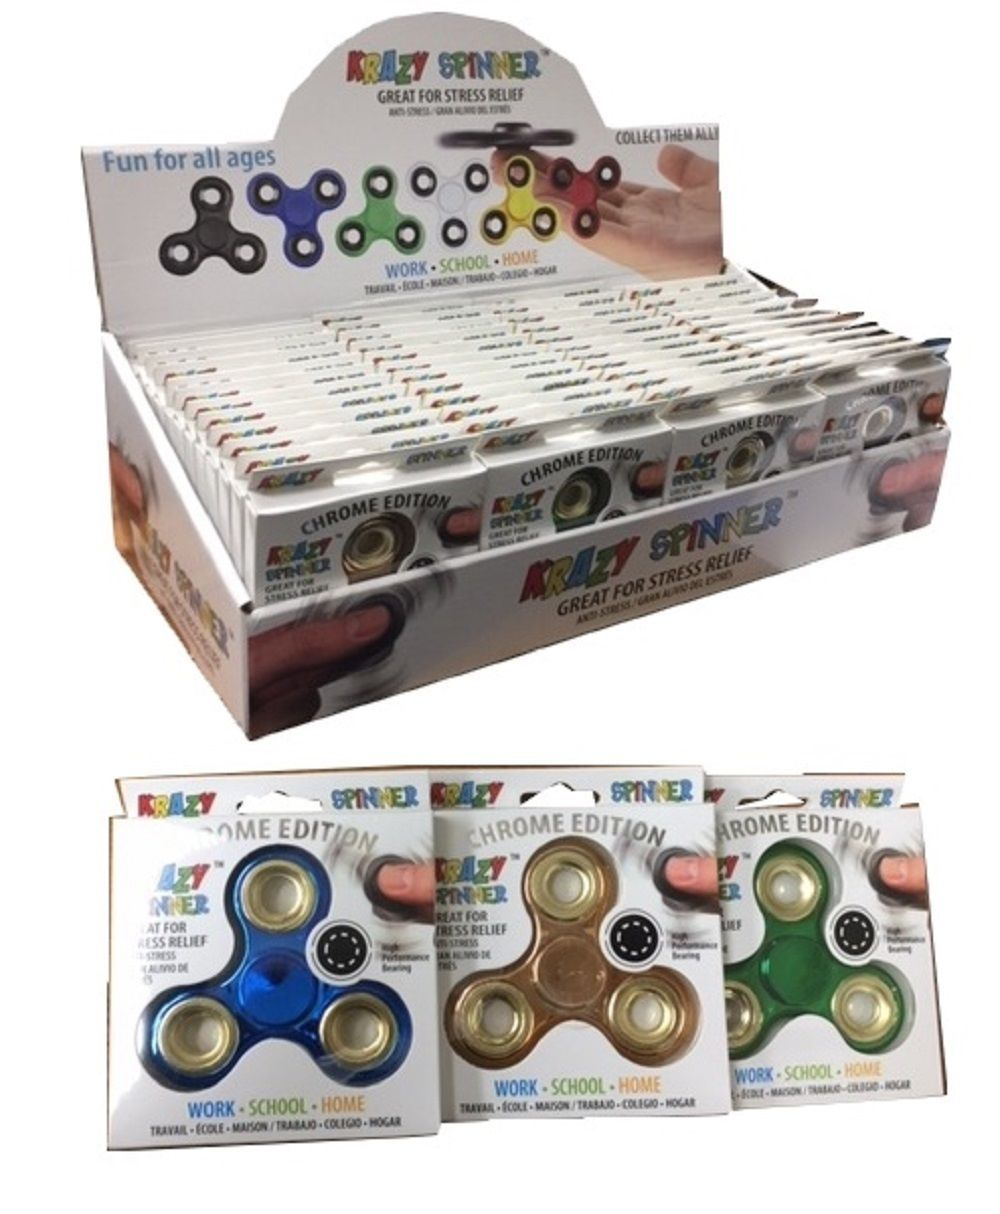 Limited Metallic Chrome Edition Fidget Spinner - 1x w/Random Color and Design